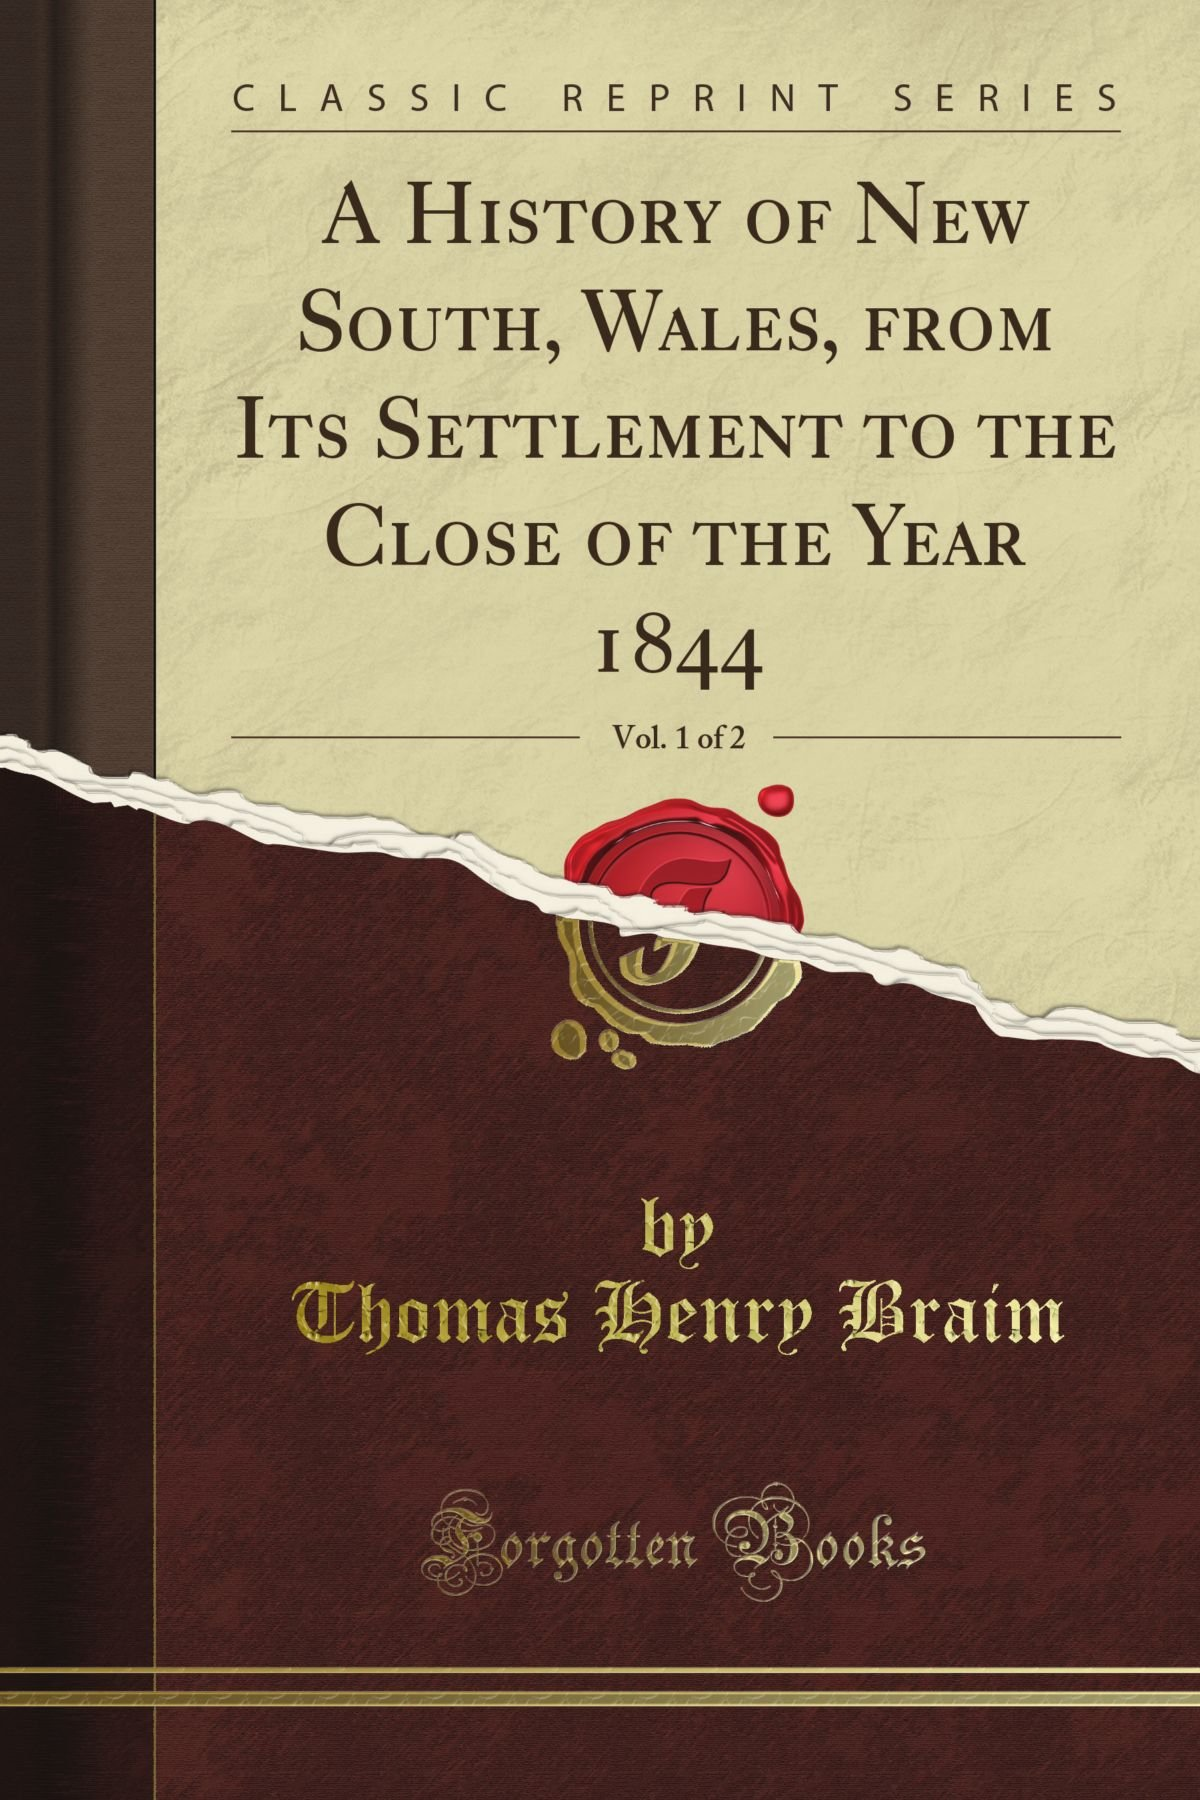 A History of New South, Wales, from Its Settlement to the Close of the Year 1844, Vol. 1 of 2 (Classic Reprint) pdf